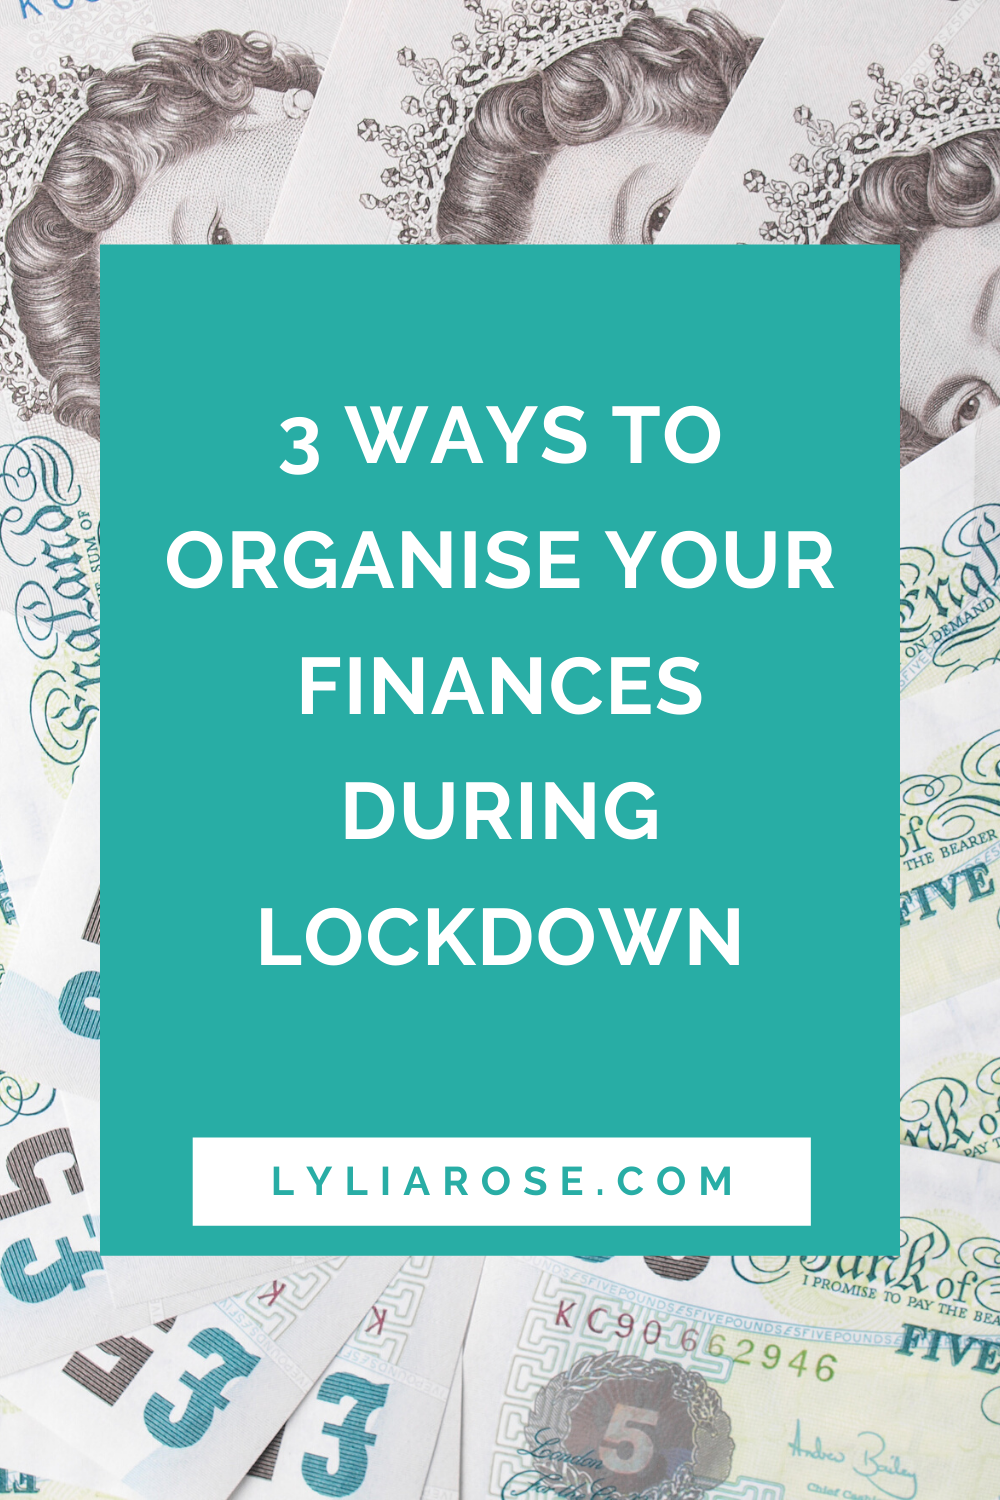 3 ways to organise your finances during lockdown